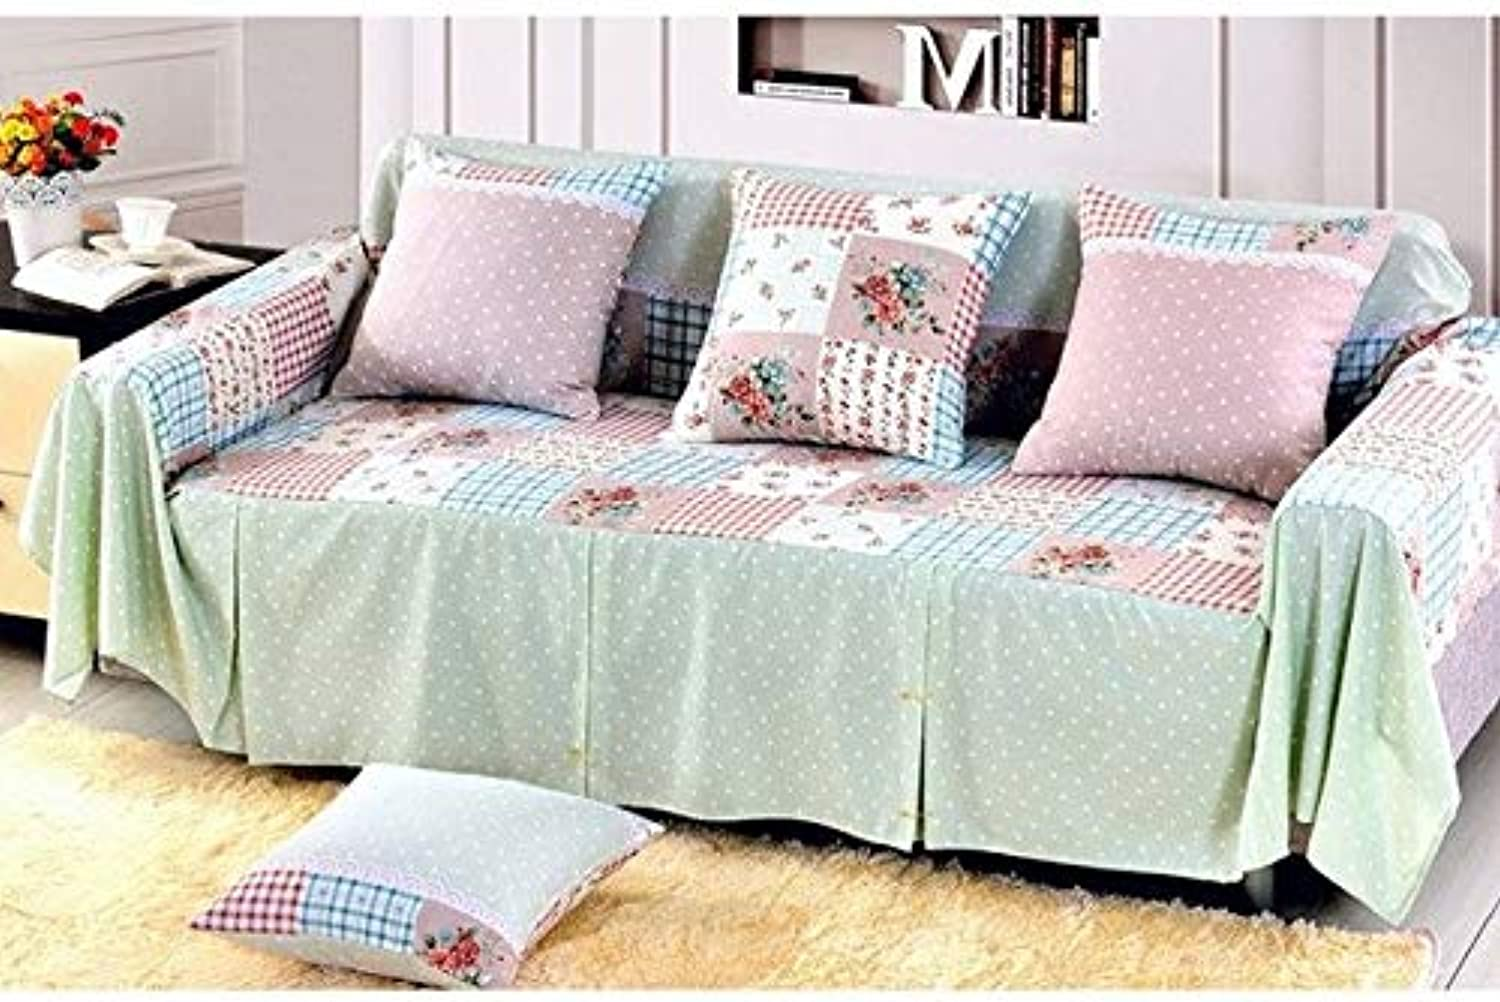 Cotton Sofa Towel Single Two Three Four-Seater Sofa Covers Slip-Resistant Plaid Couch Cover for Living Room Sofa Bed Home Decor   07, 200x200cm